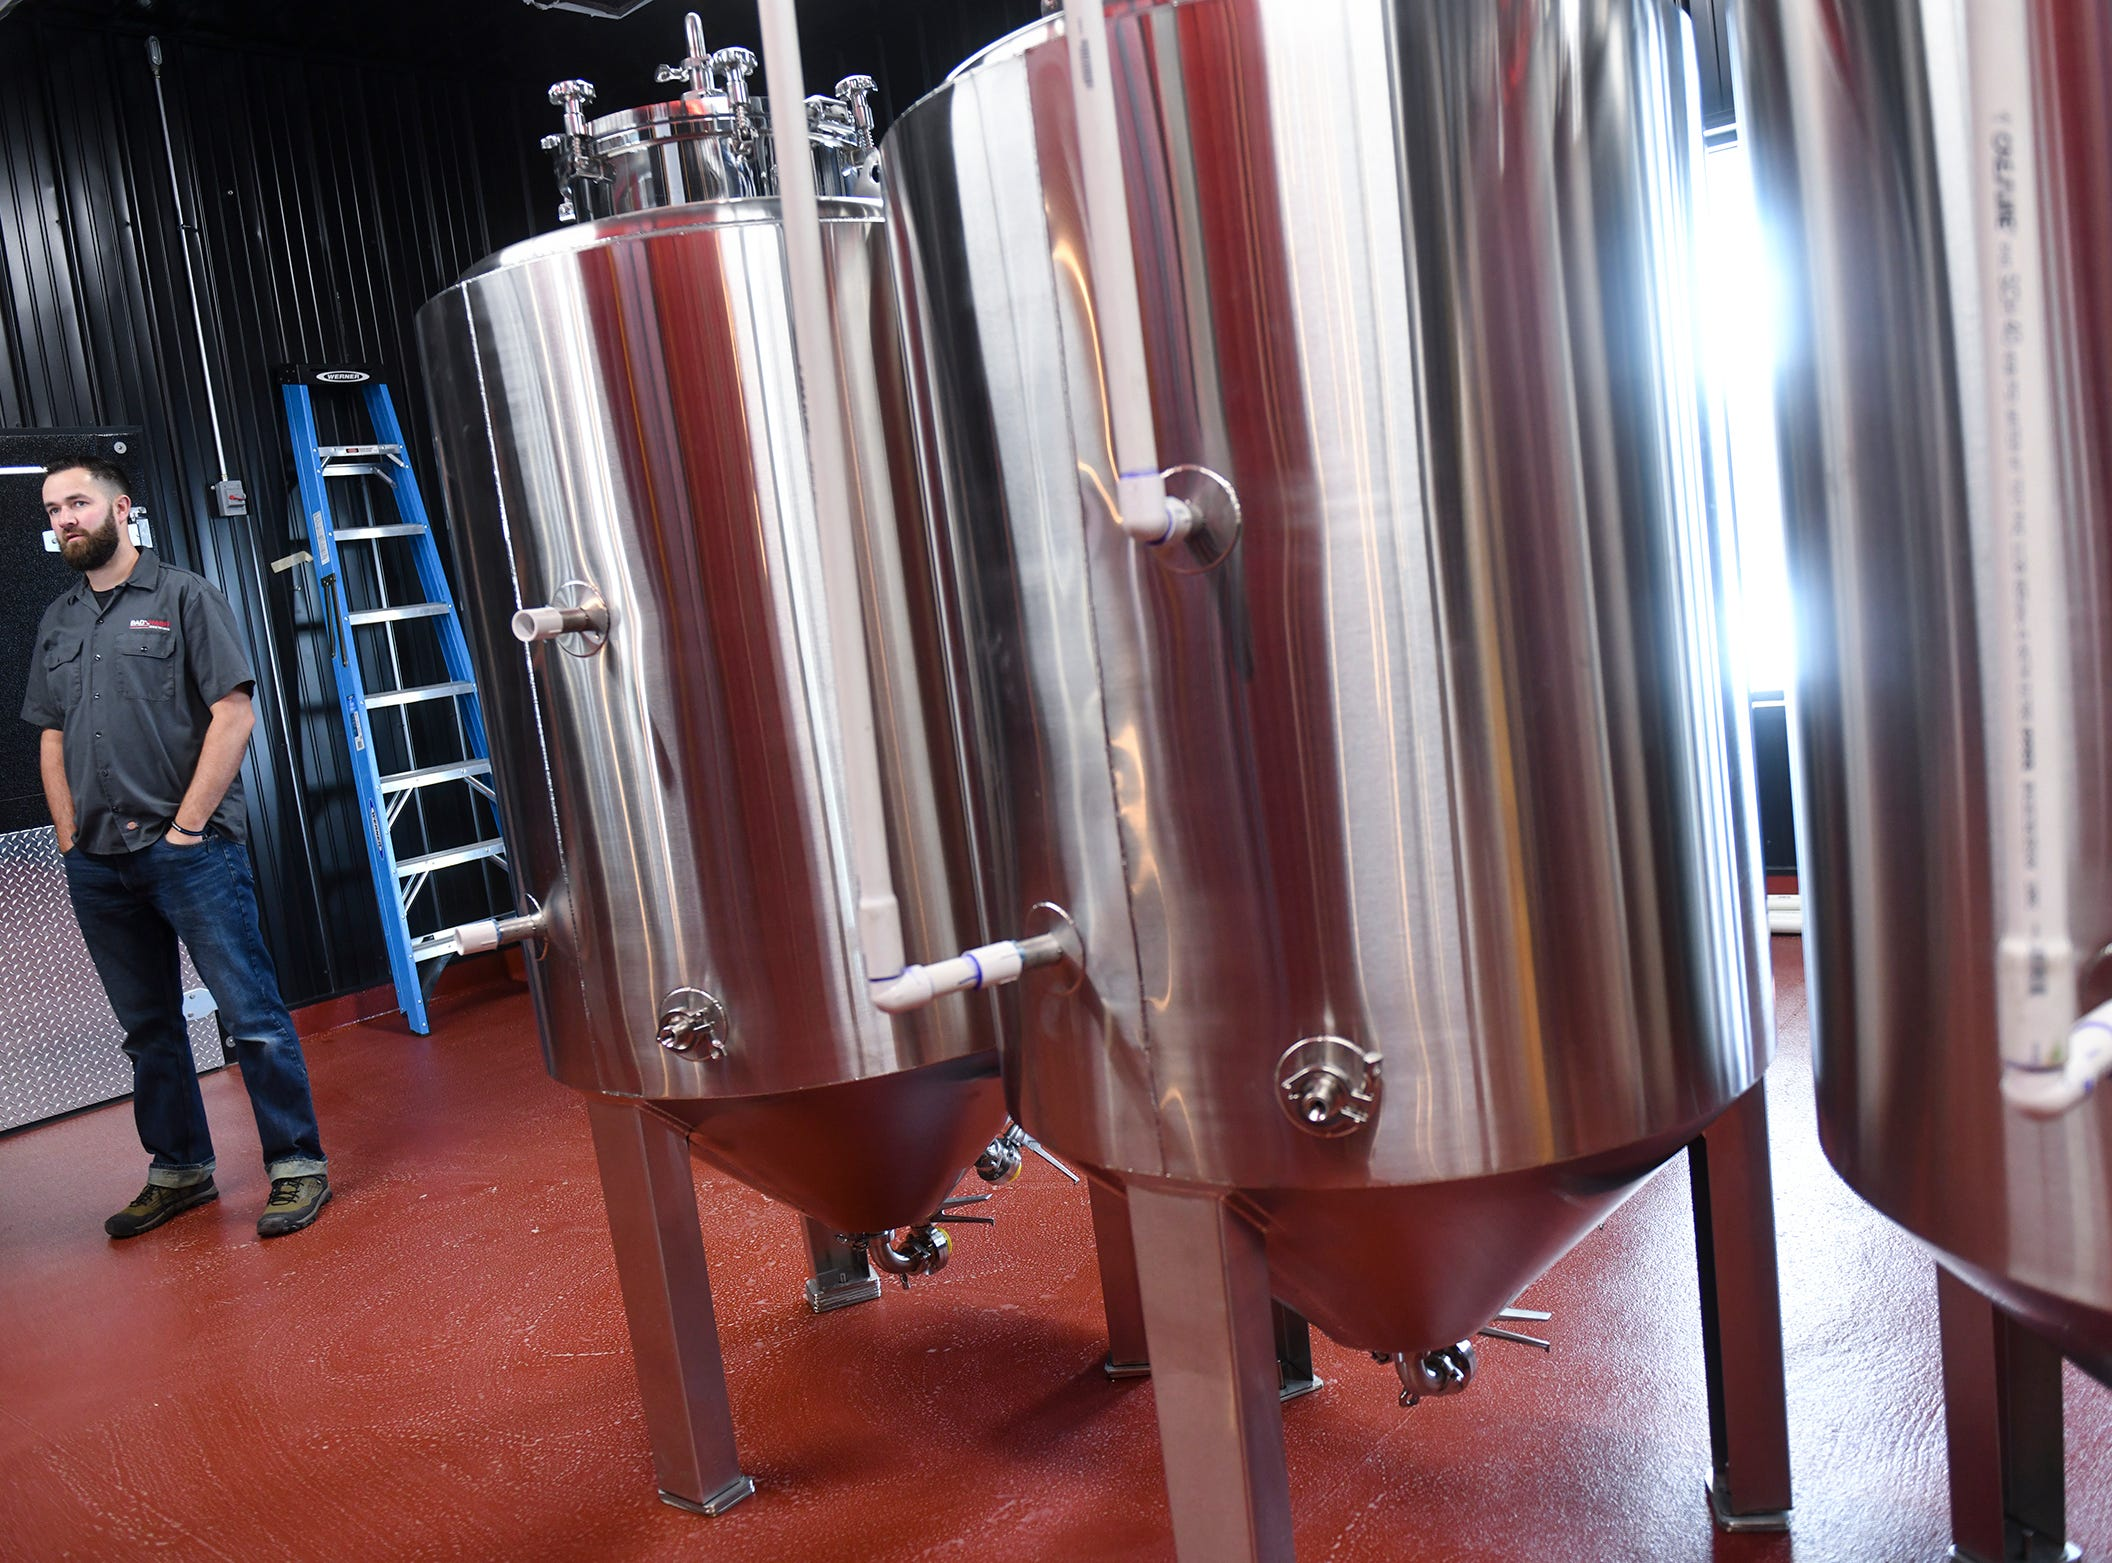 Owner Aaron Rieland talks about new fermentation tanks installed in the brewing area at the new Bad Habit Brewing Company location Saturday, April 13, in St. Joseph.